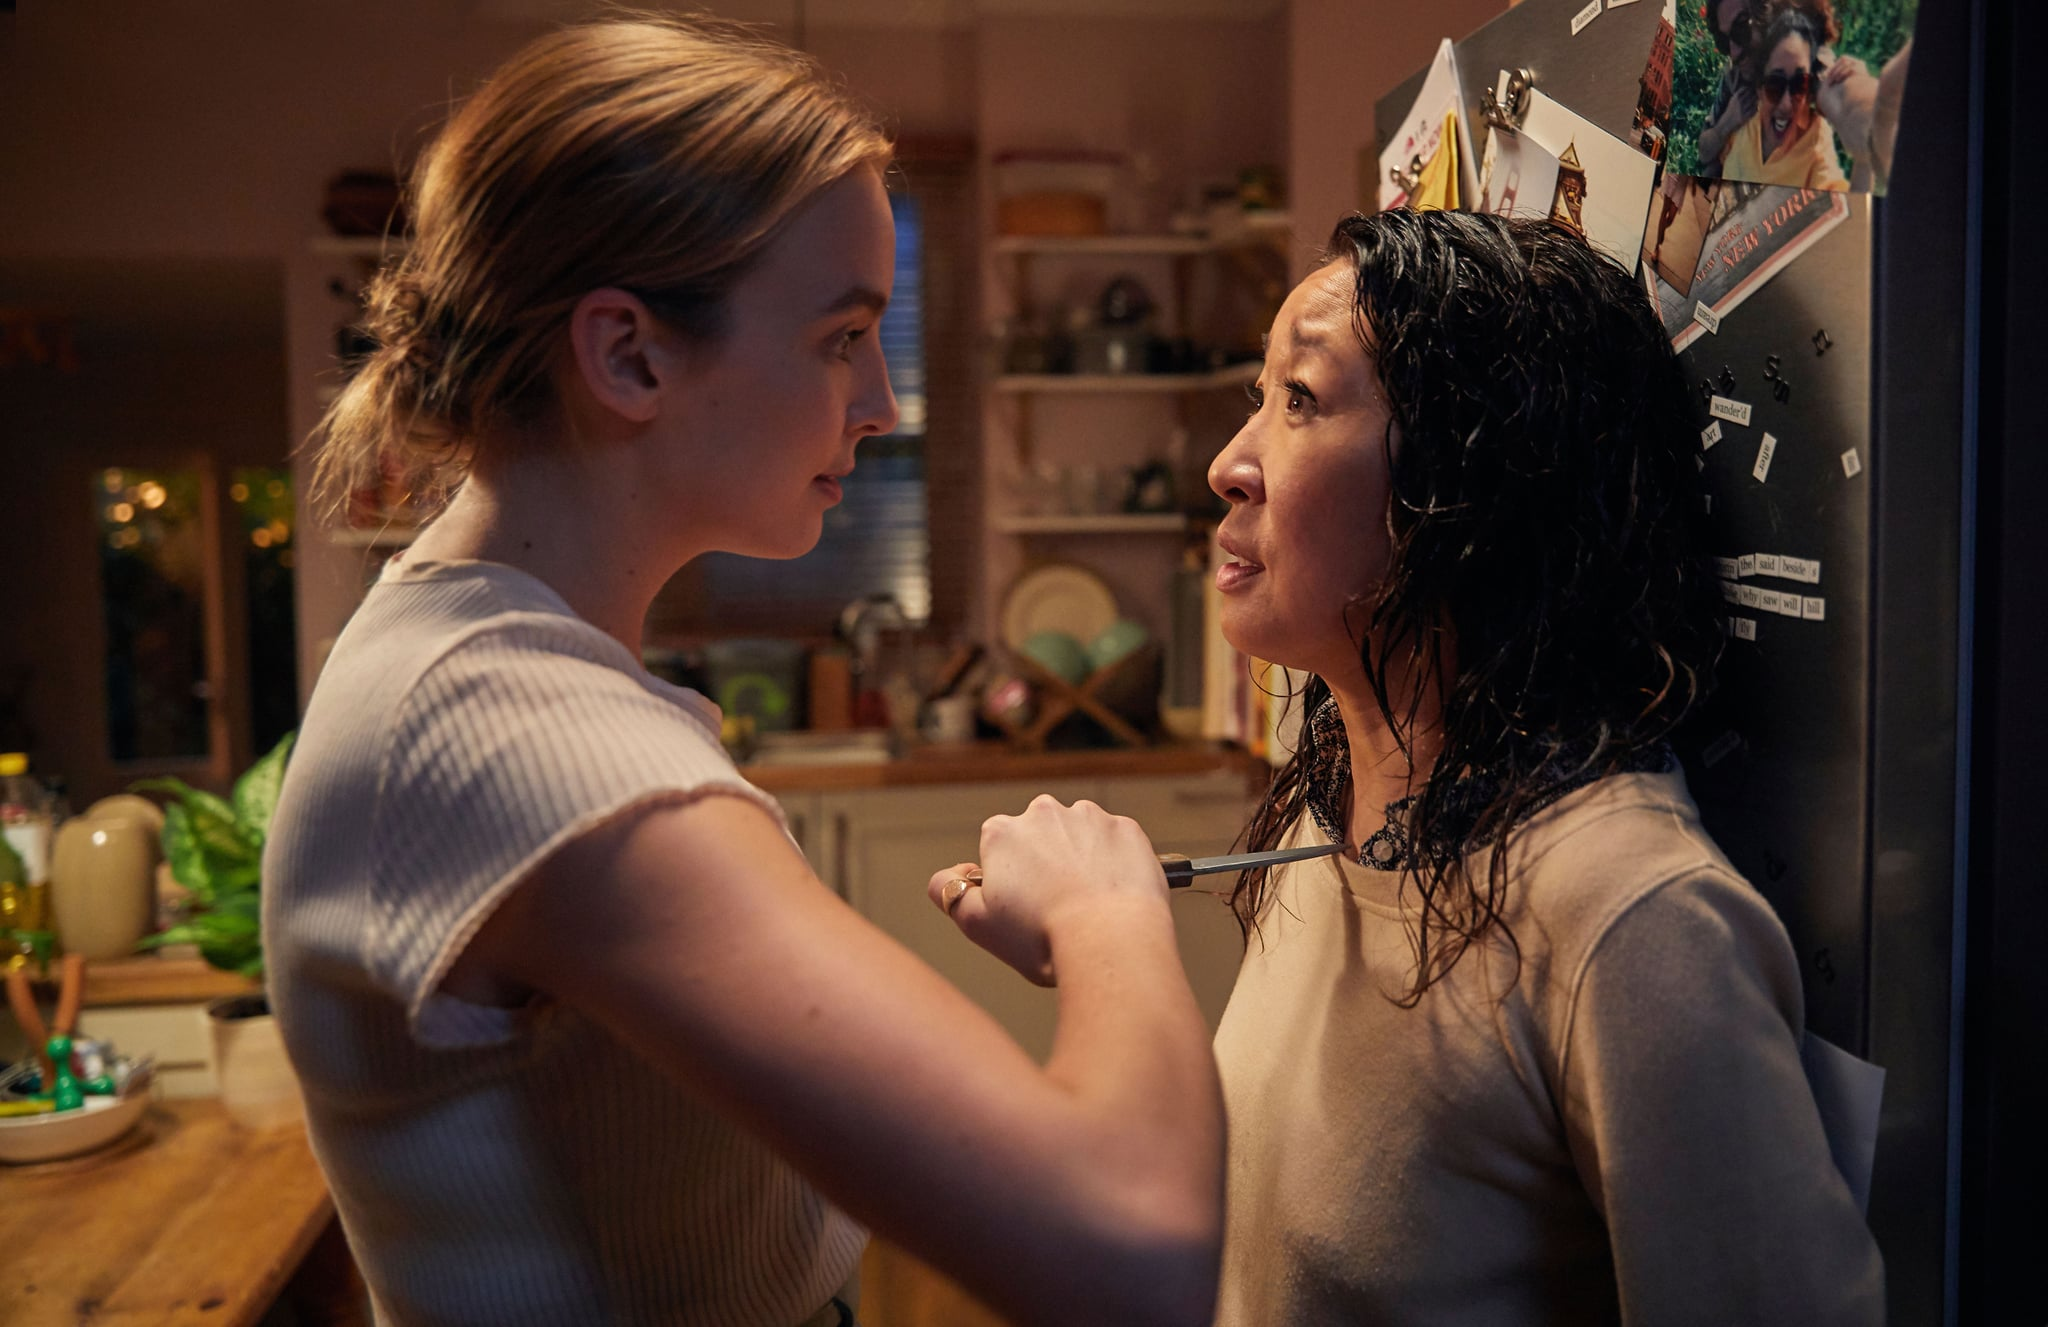 KILLING EVE, from left: Jodie Comer, Sandra Oh, (Season 1, premieres April 8, 2018). photo: BBC-America / Courtesy: Everett Collection